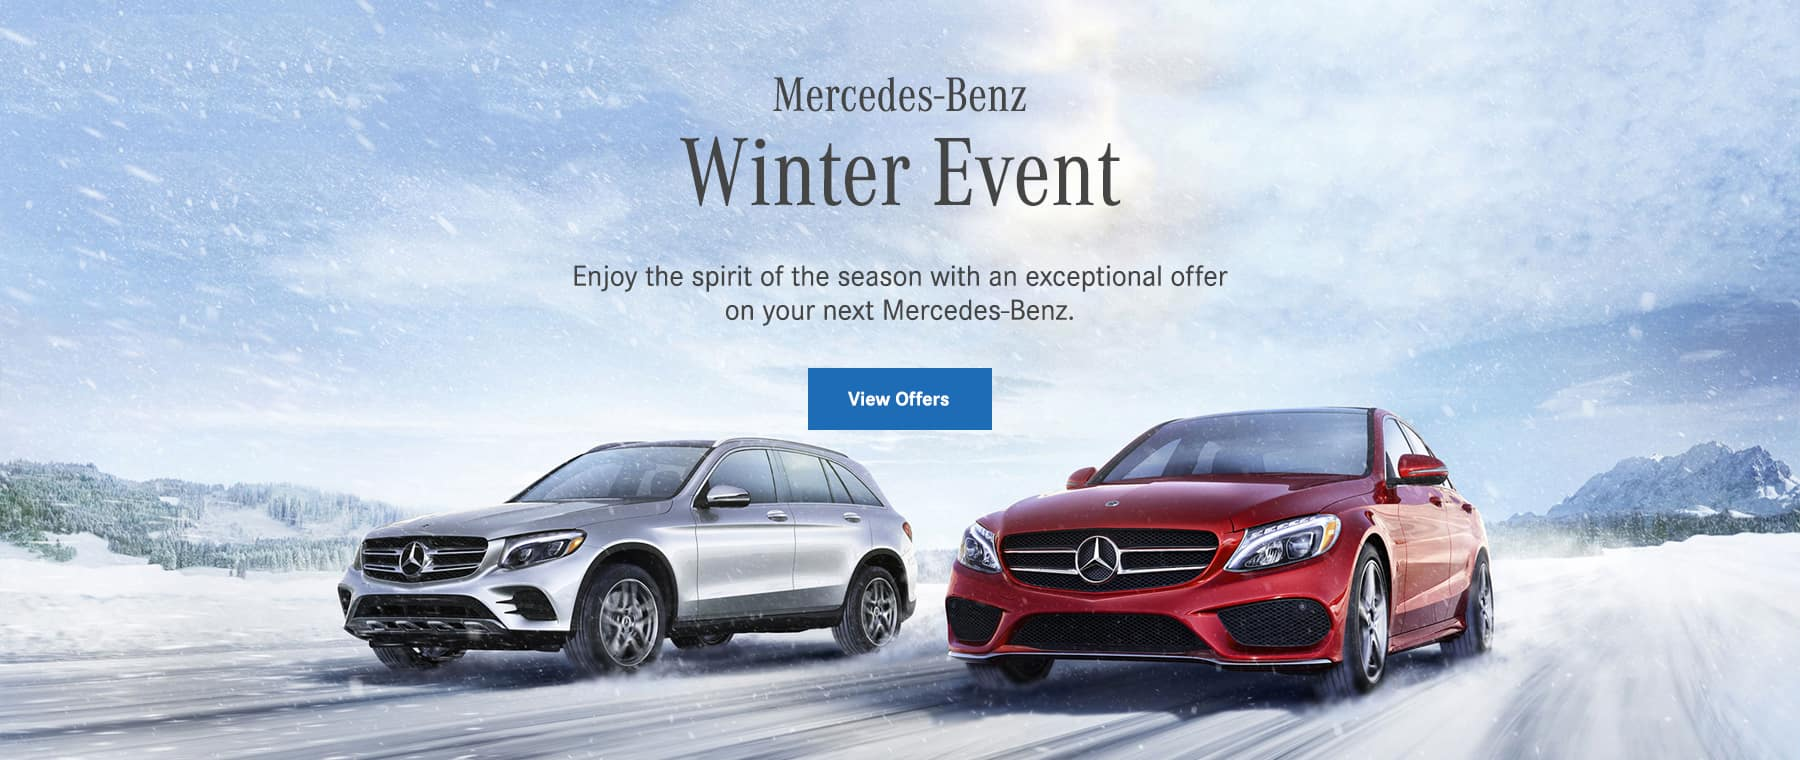 Mercedes benz of milwaukee north wi luxury auto dealership for 2017 mercedes benz winter event